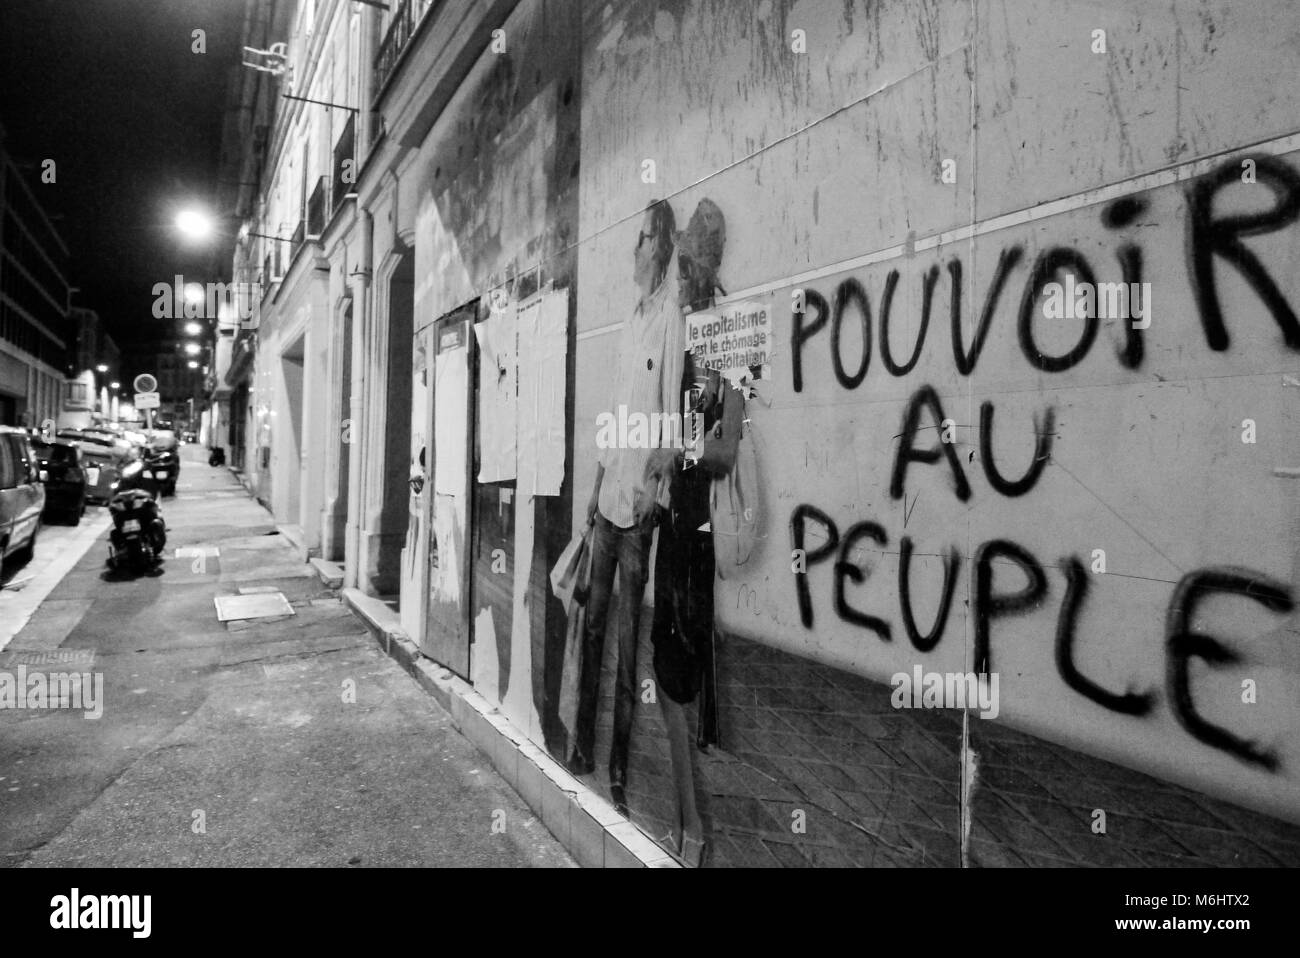 Anarchist grafiti, 'Power to the people', Marseille, France - Stock Image